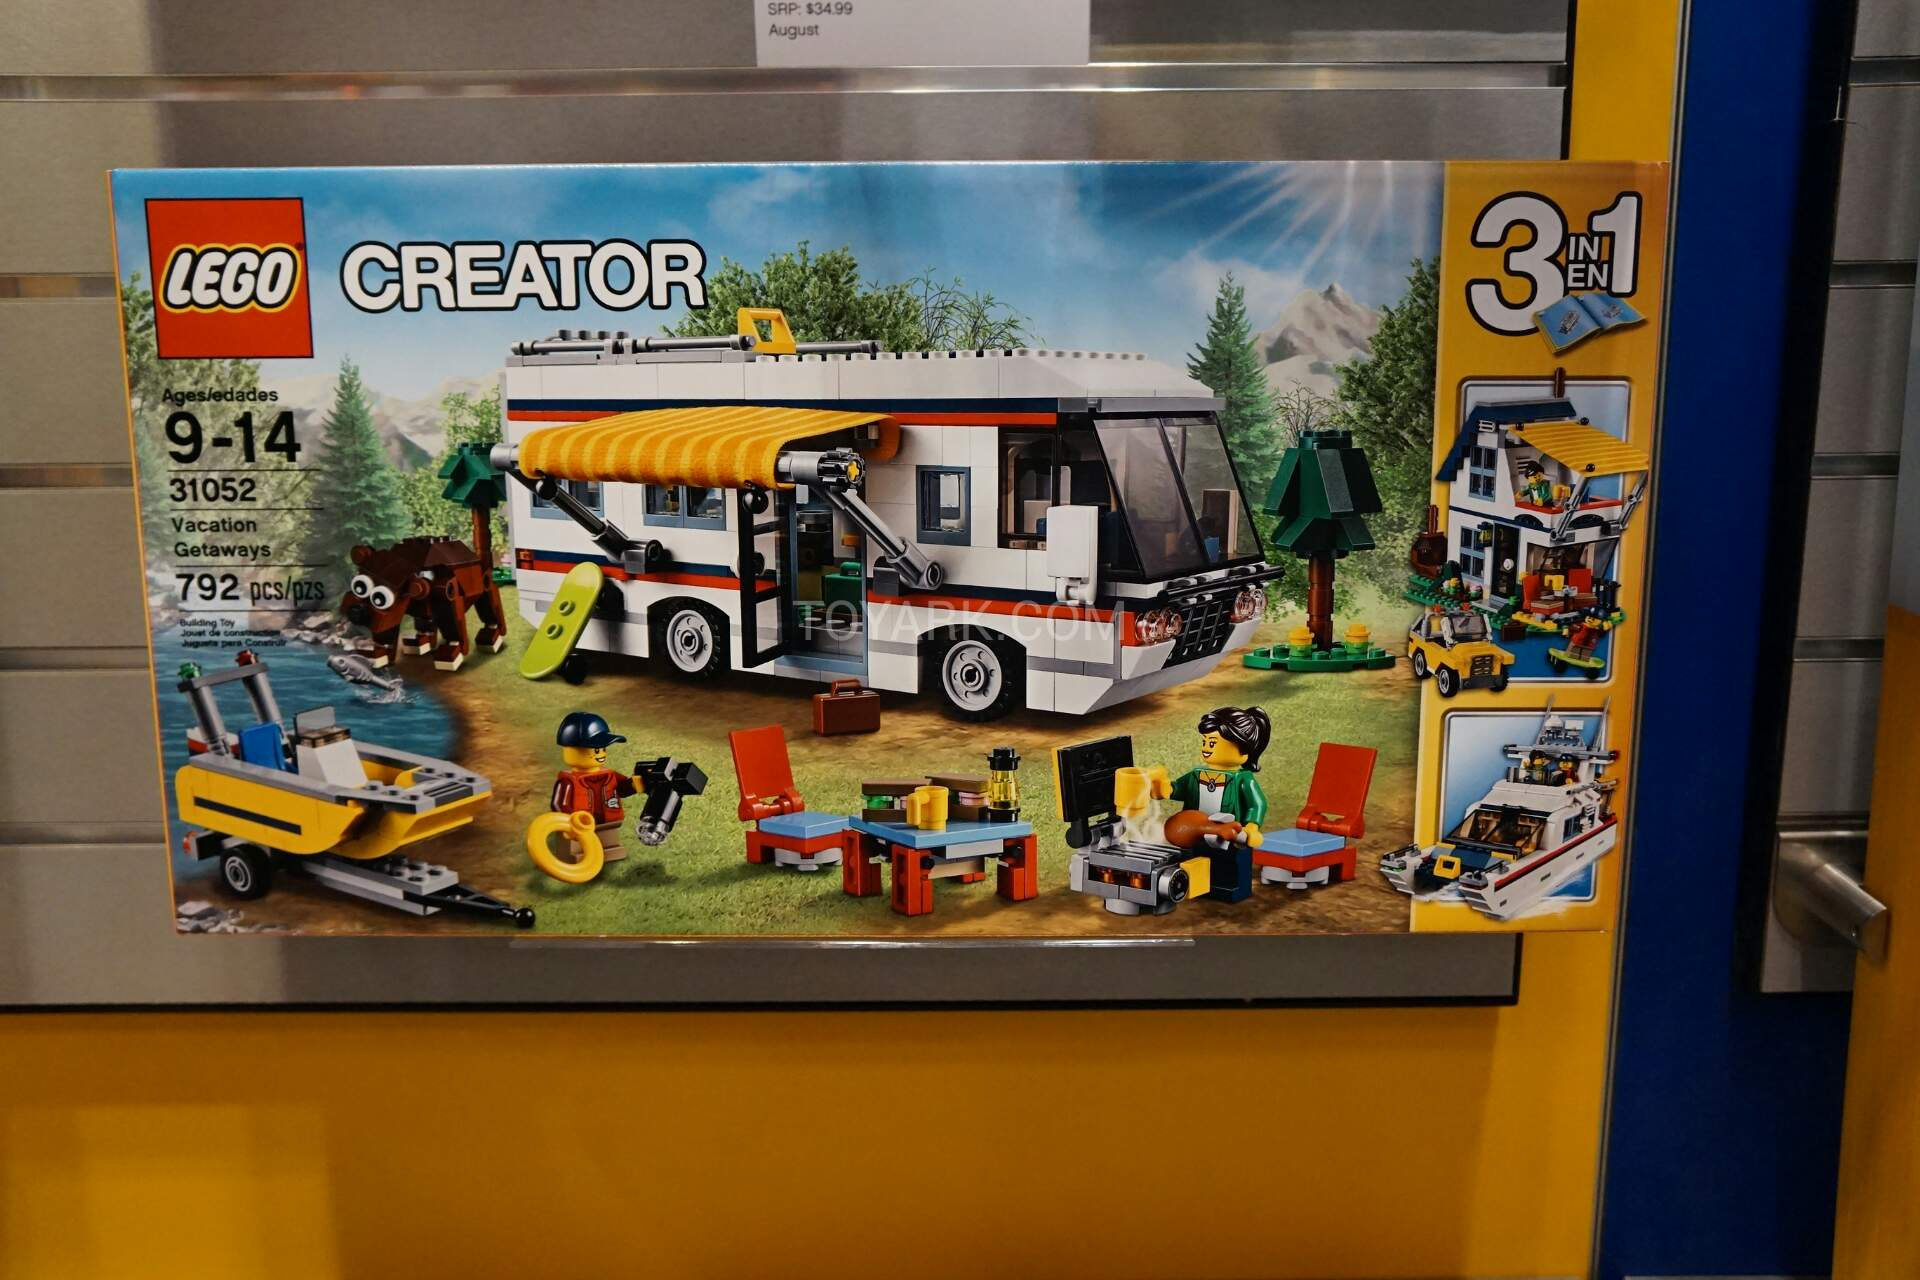 31052 vacation getaways creator brickpicker - Lego brick caravan a record built piece by piece ...